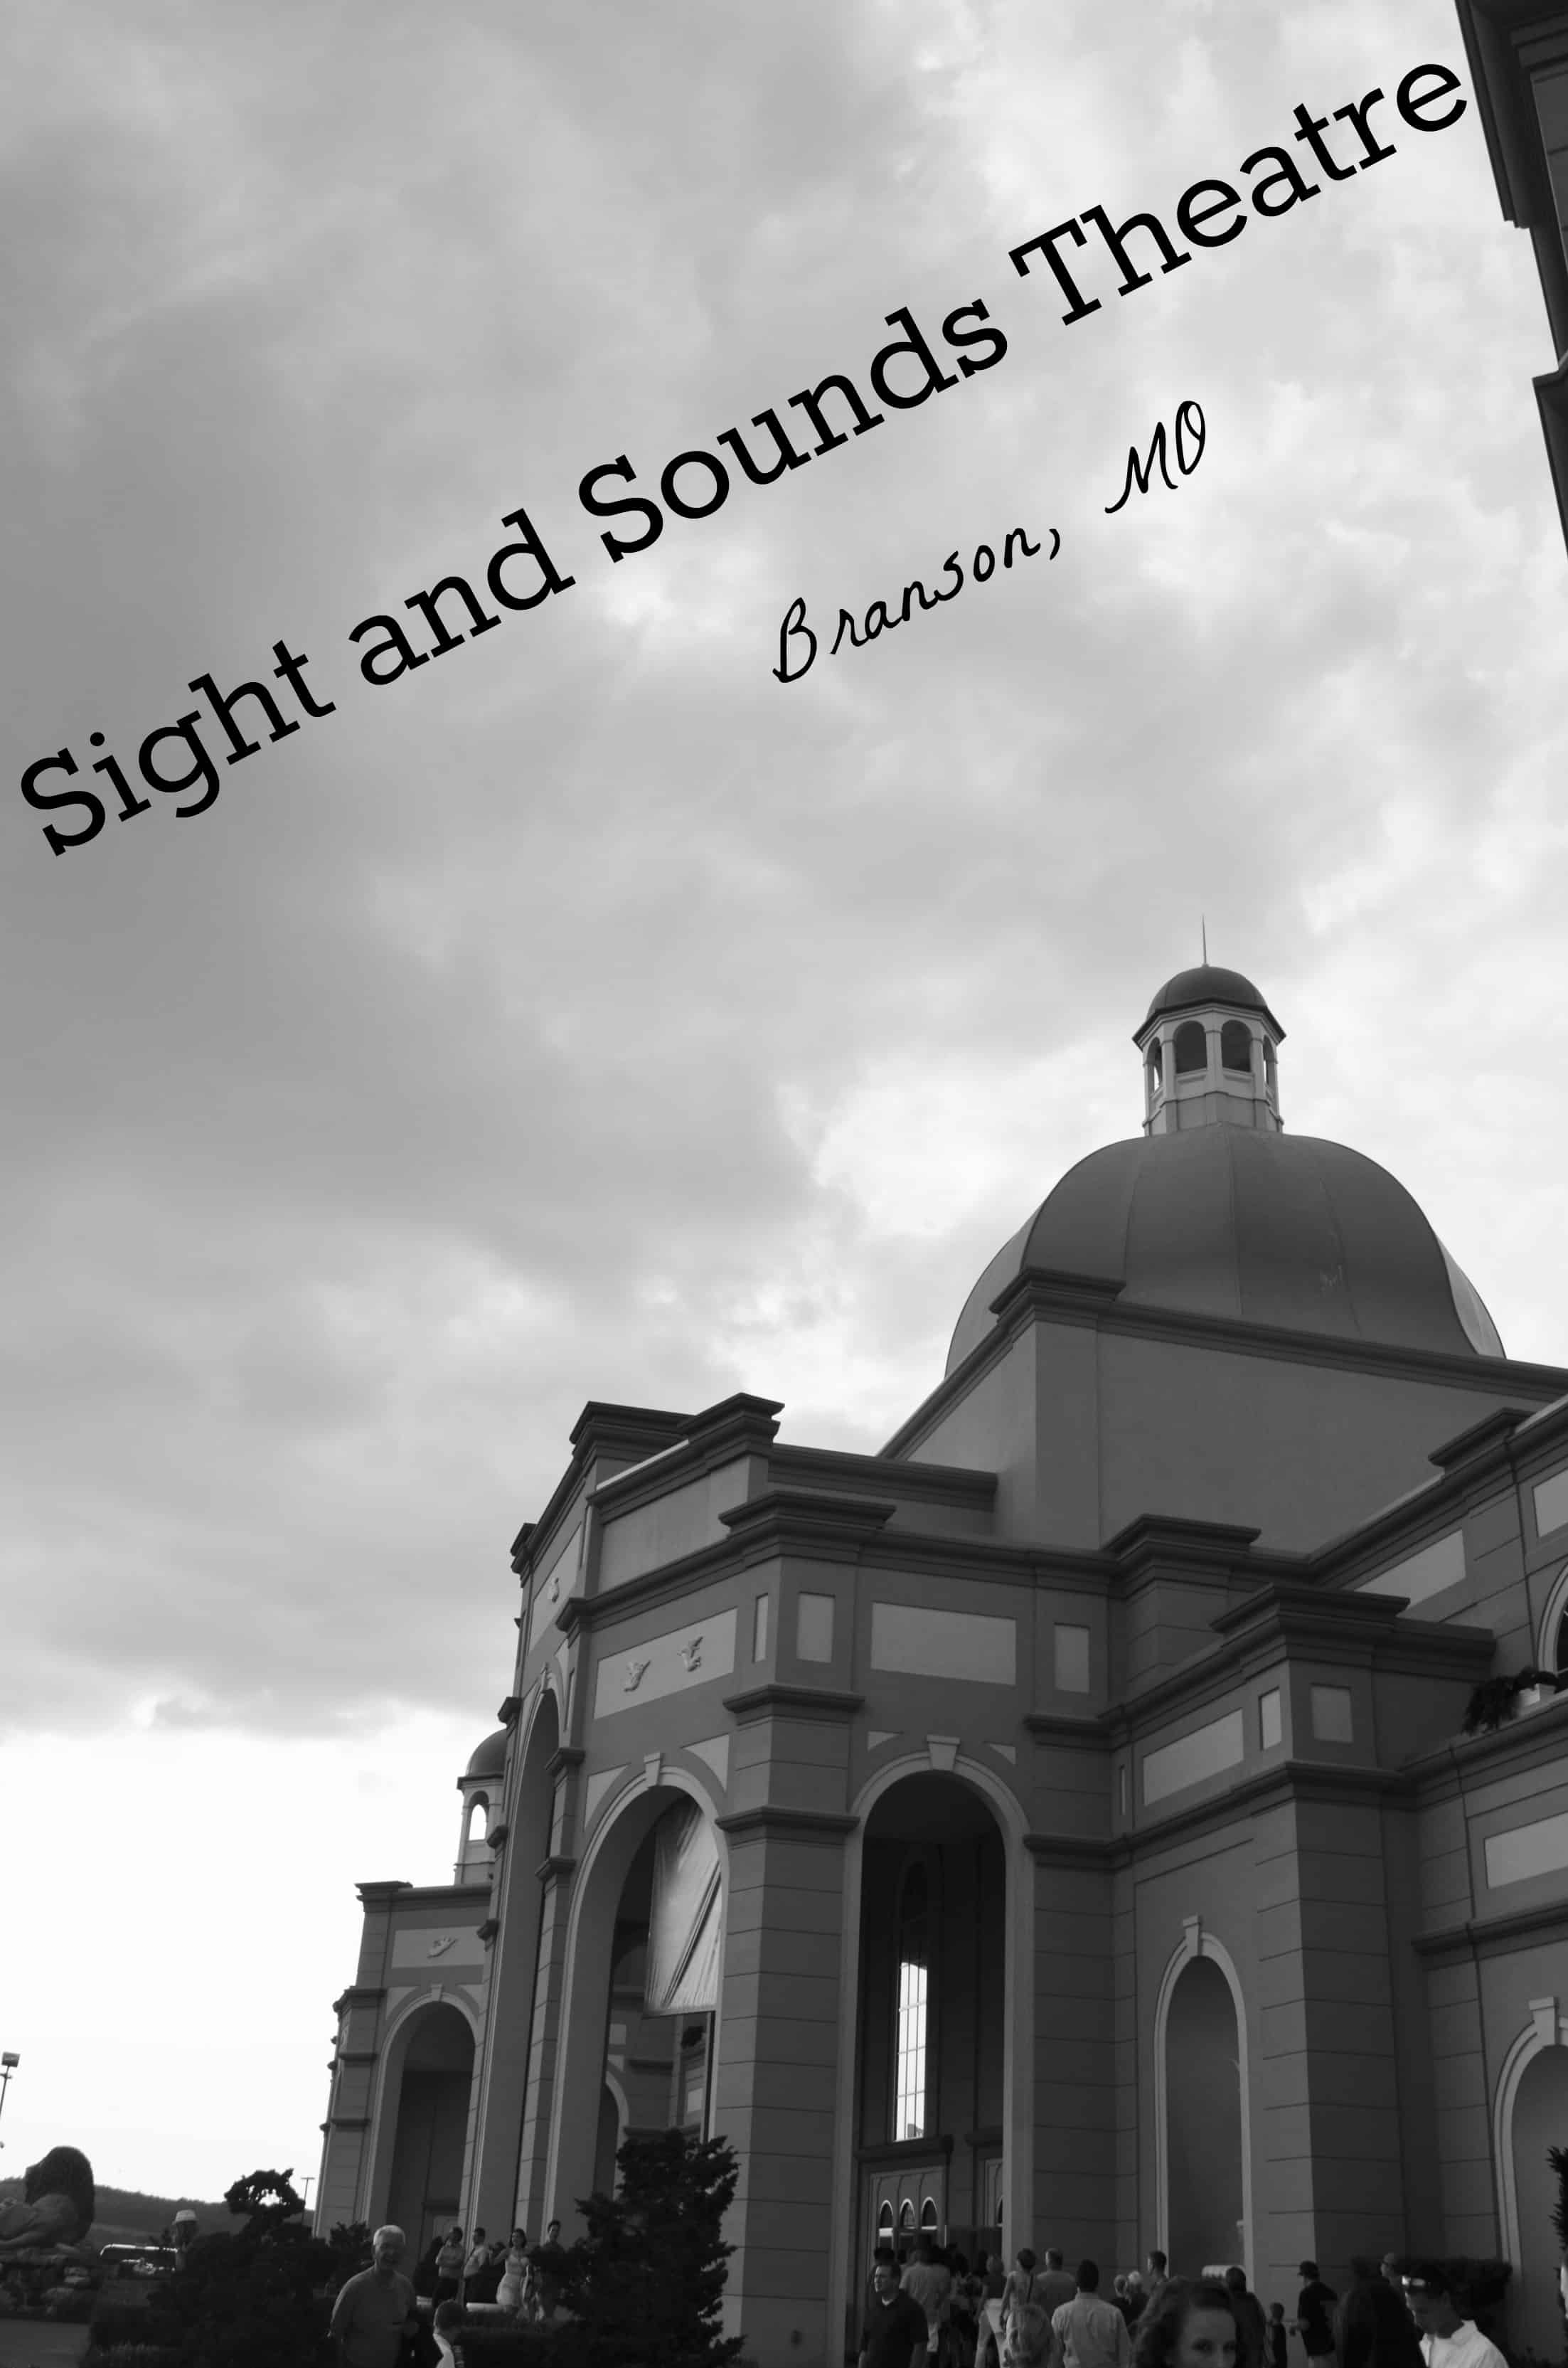 Sight & Sound Theatres is located in Lancaster County, PA and Branson, MO. Visit Sight & Sound Theatres' official website for more information on upcoming shows as well as packages, tours, attractions and tickets.